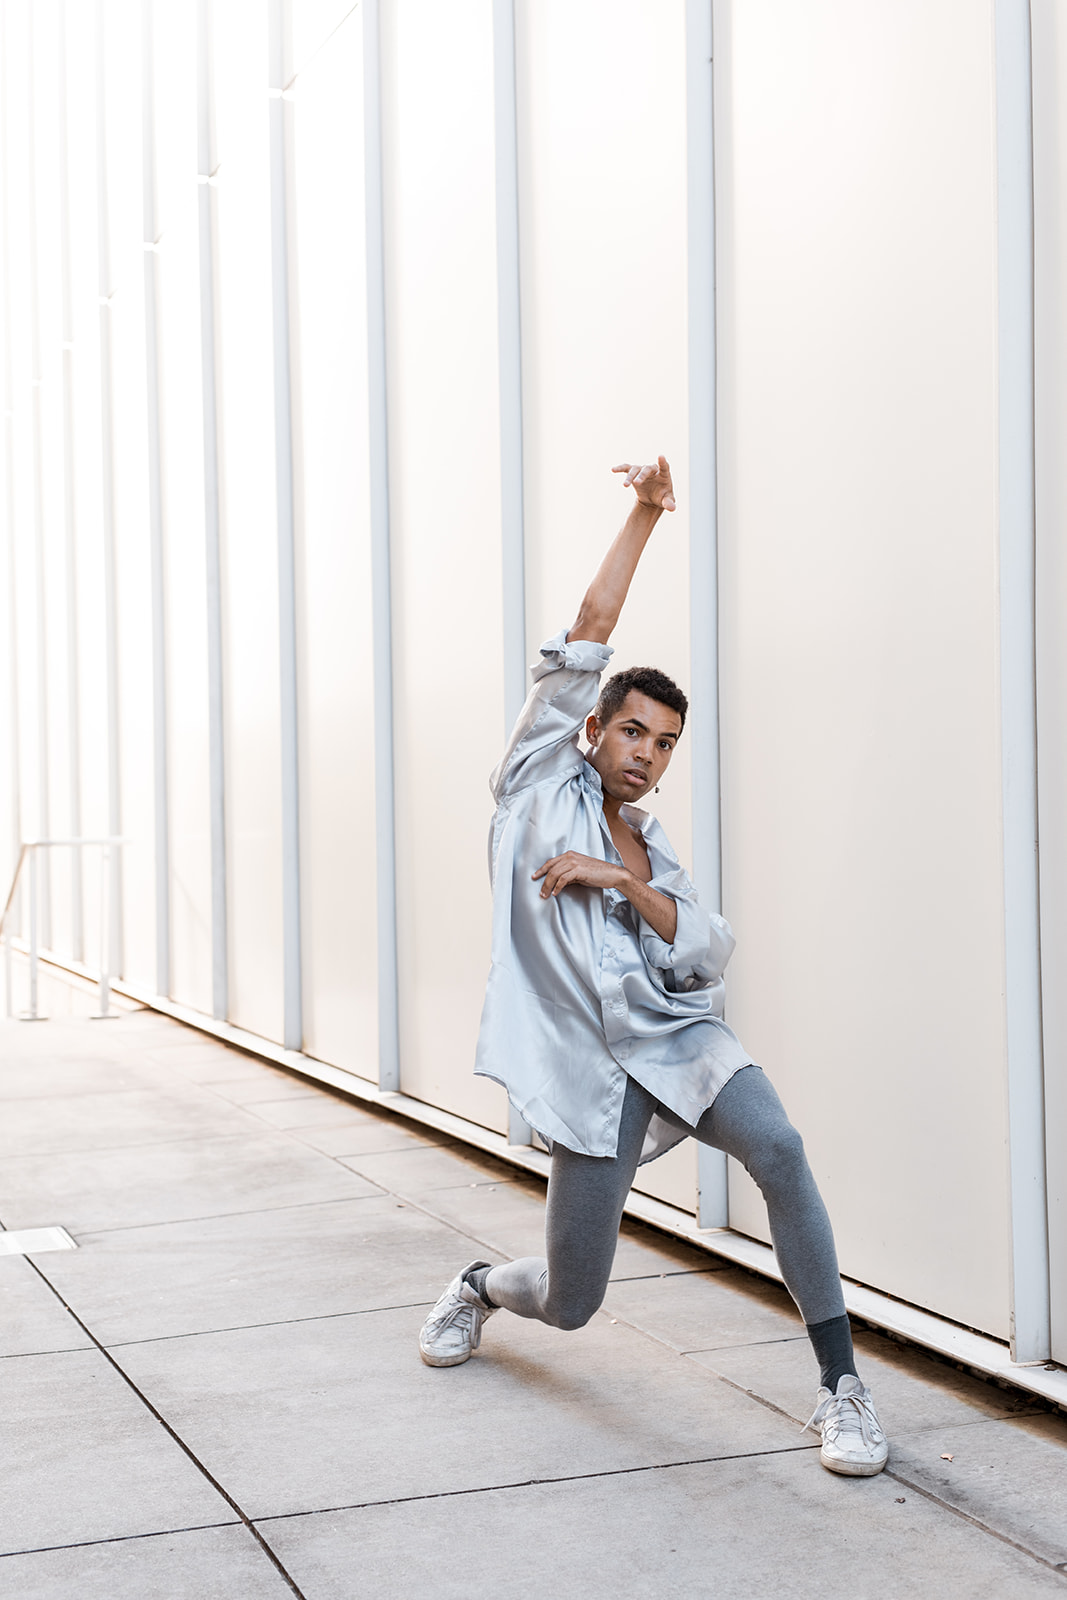 Benjamin Stevenson  is a movement artist from rural Alabama. They attended Emory University, where they received their B.A in Political Science and Arabic. In addition to their primary studies they maintained an active presence in both the Dance and Creative Writing programs. Here, they began their training in Ballet and Modern technique at the ripe age of eighteen. Upon graduating with their bachelors degree, they began cultivating their writing into movement and choreography as a means of facilitating insightful dialogue on topics such like identity politics, multiculturalism, mental health, and relationships. Benjamin enjoys using text as an impetus for their personal movement practice. Moreover, navigating their identity as a non-binary person of color is an important component in the development of their artistry. This self-navigation process is something they encourage their audience to do when experiencing their work. Currently, Benjamin resides in Atlanta, Georgia where they are rehearsing with Staibdance, Kit Modus, and Okwae Miller. Their writing has been published in Wussy Magazine, Floromancy, Adolescent Content, Emory University's queer literary magazine Mr. Ma'am., and Middle Eastern literary magazine Khabar Keslan. Benjamin has also worked with other notable artists such as Anicka Austin, Bella Dorado, Greg Catellier, Jillian Mitchell, Kathleen Wessel, Noelle Kayser, and Okwae Miller.